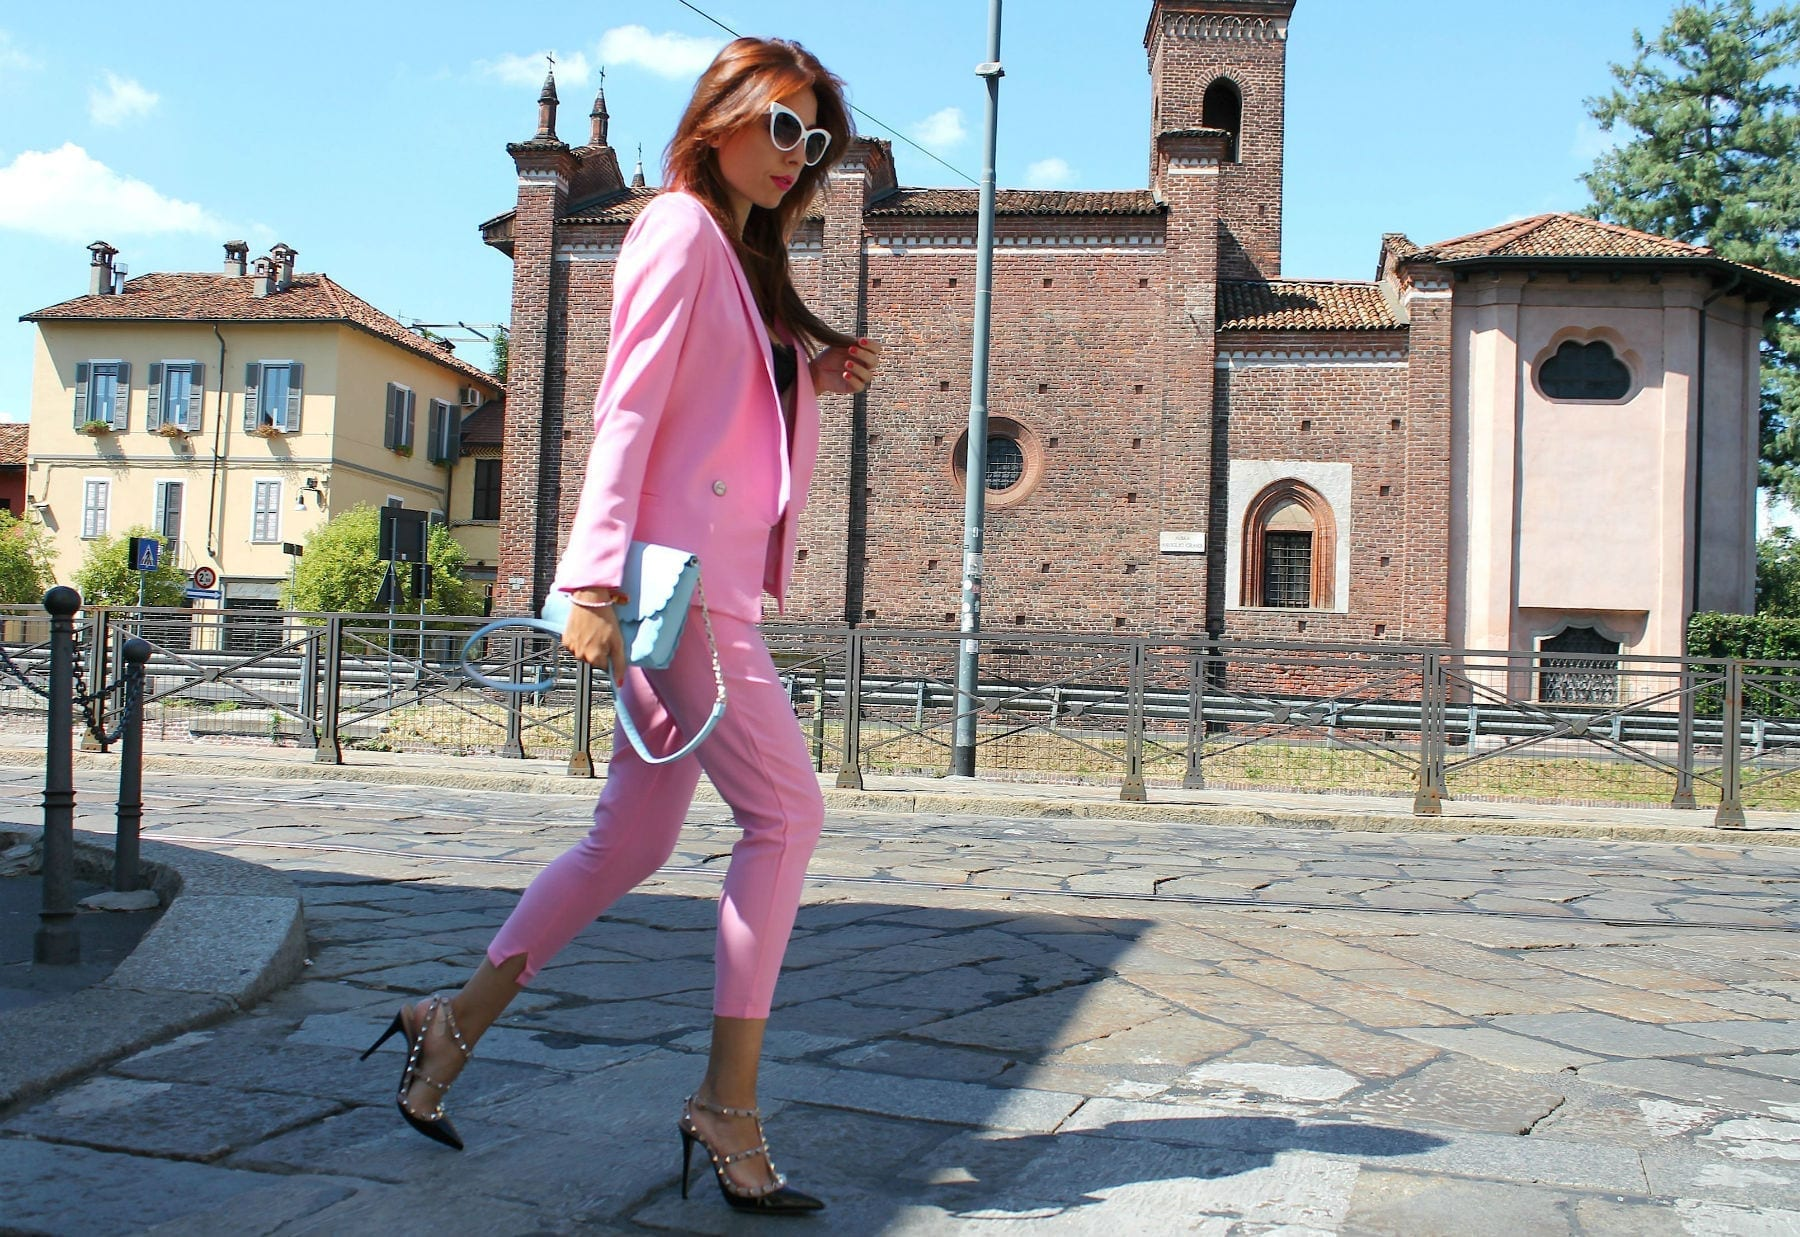 taiilleur rosa, romanzi d'amore, romantic chic outfit, pink tailleur, come vestirsi a lavoro, rockstud authentic, theladycracy.it, pink tailleur